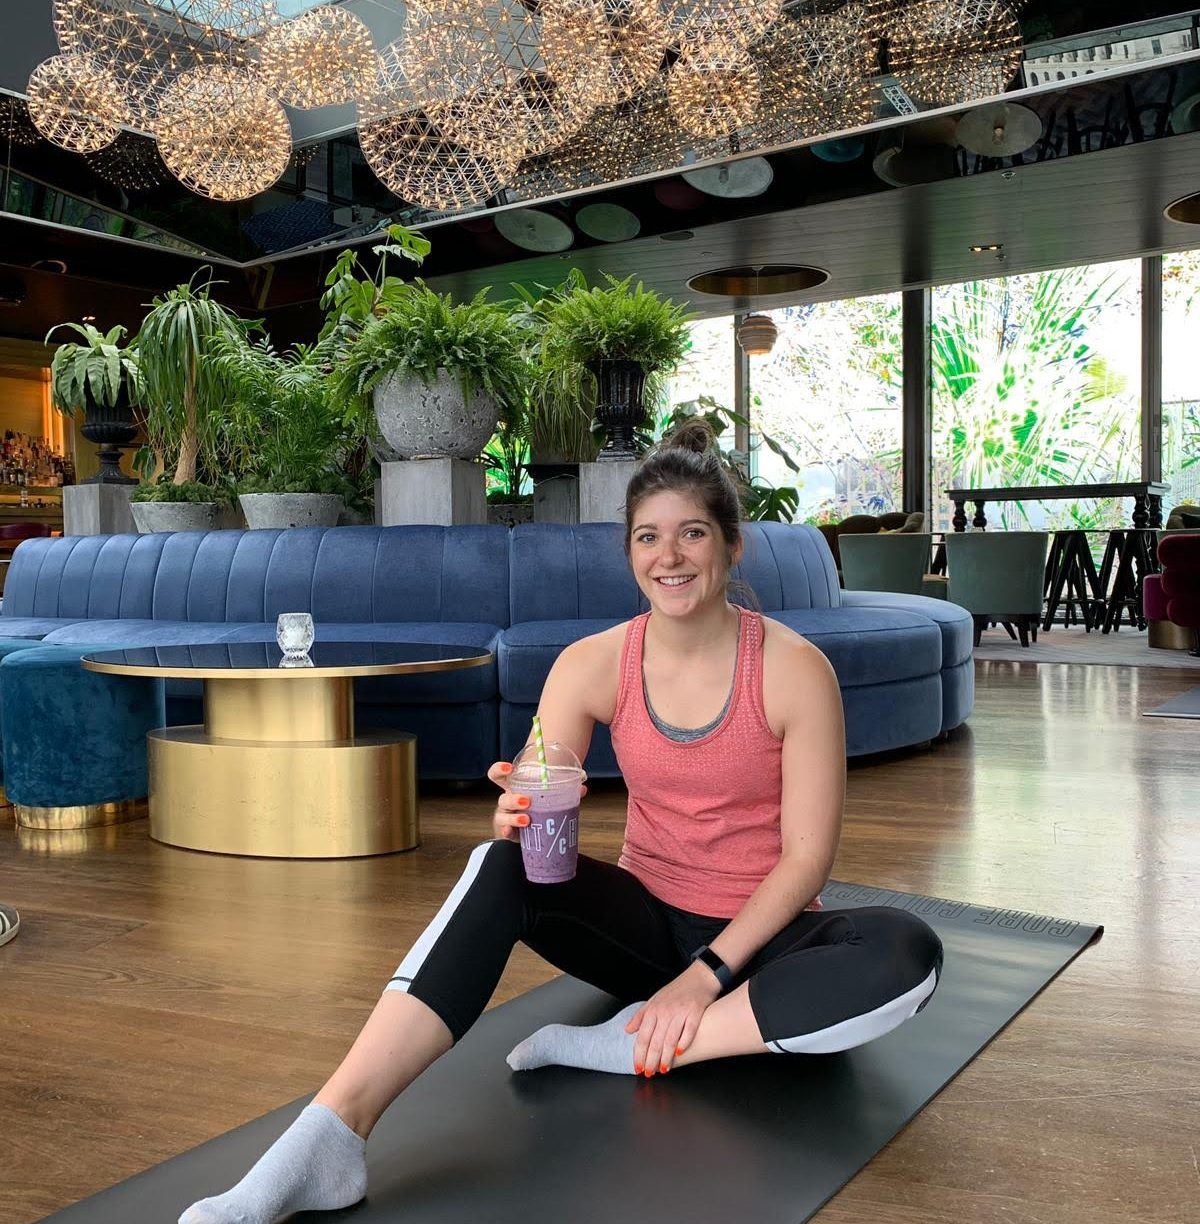 Skyline stretch, power yoga at Sea Containers